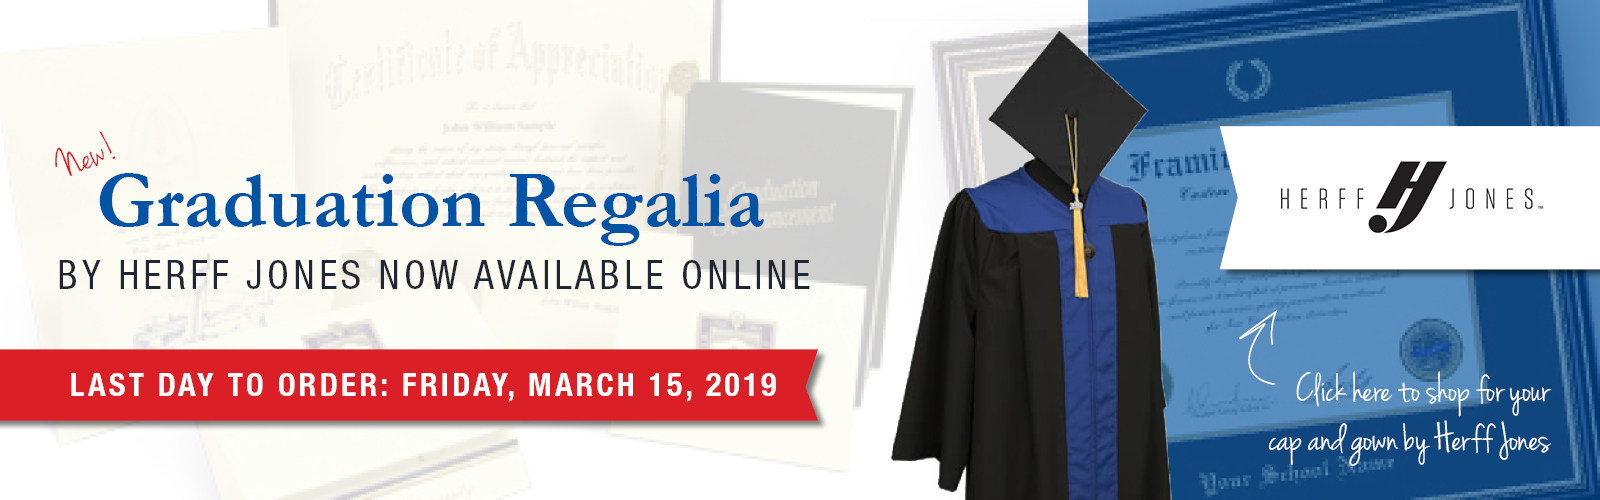 New Graduation Regalia by Herff Jones Now Available Online - Last day to order: Friday, March 15th, 2019 - Click here to shop for your cap and gown!